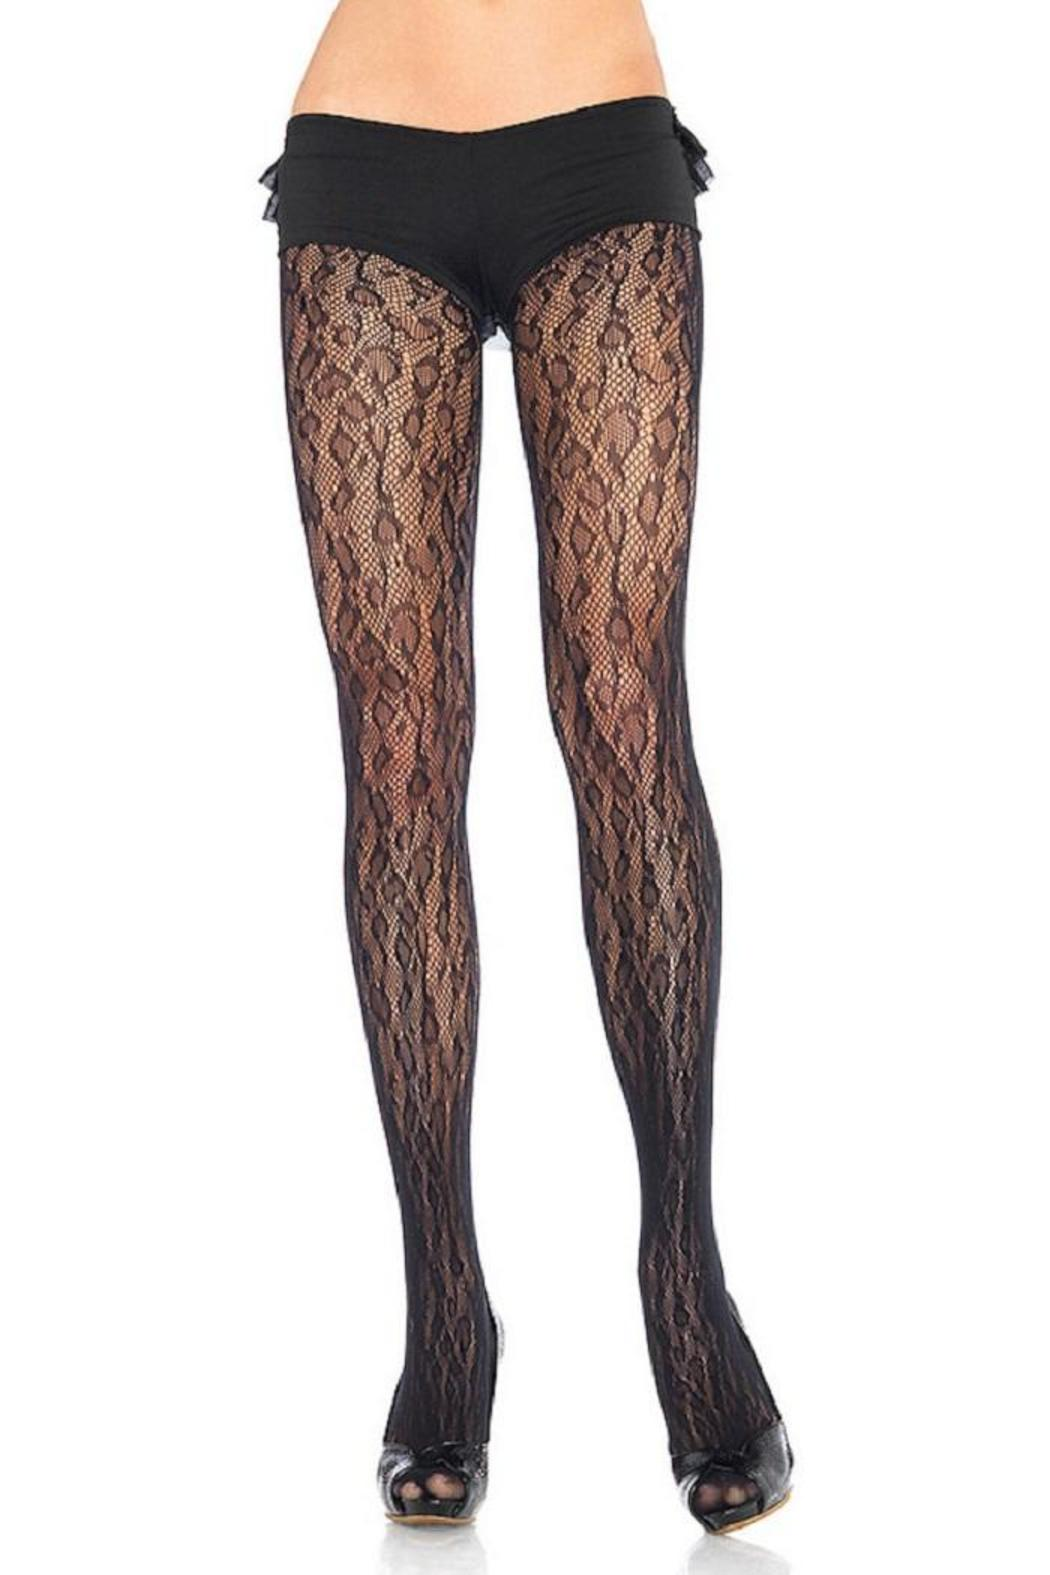 Adore Clothes & More Leopard Print Tights - Main Image